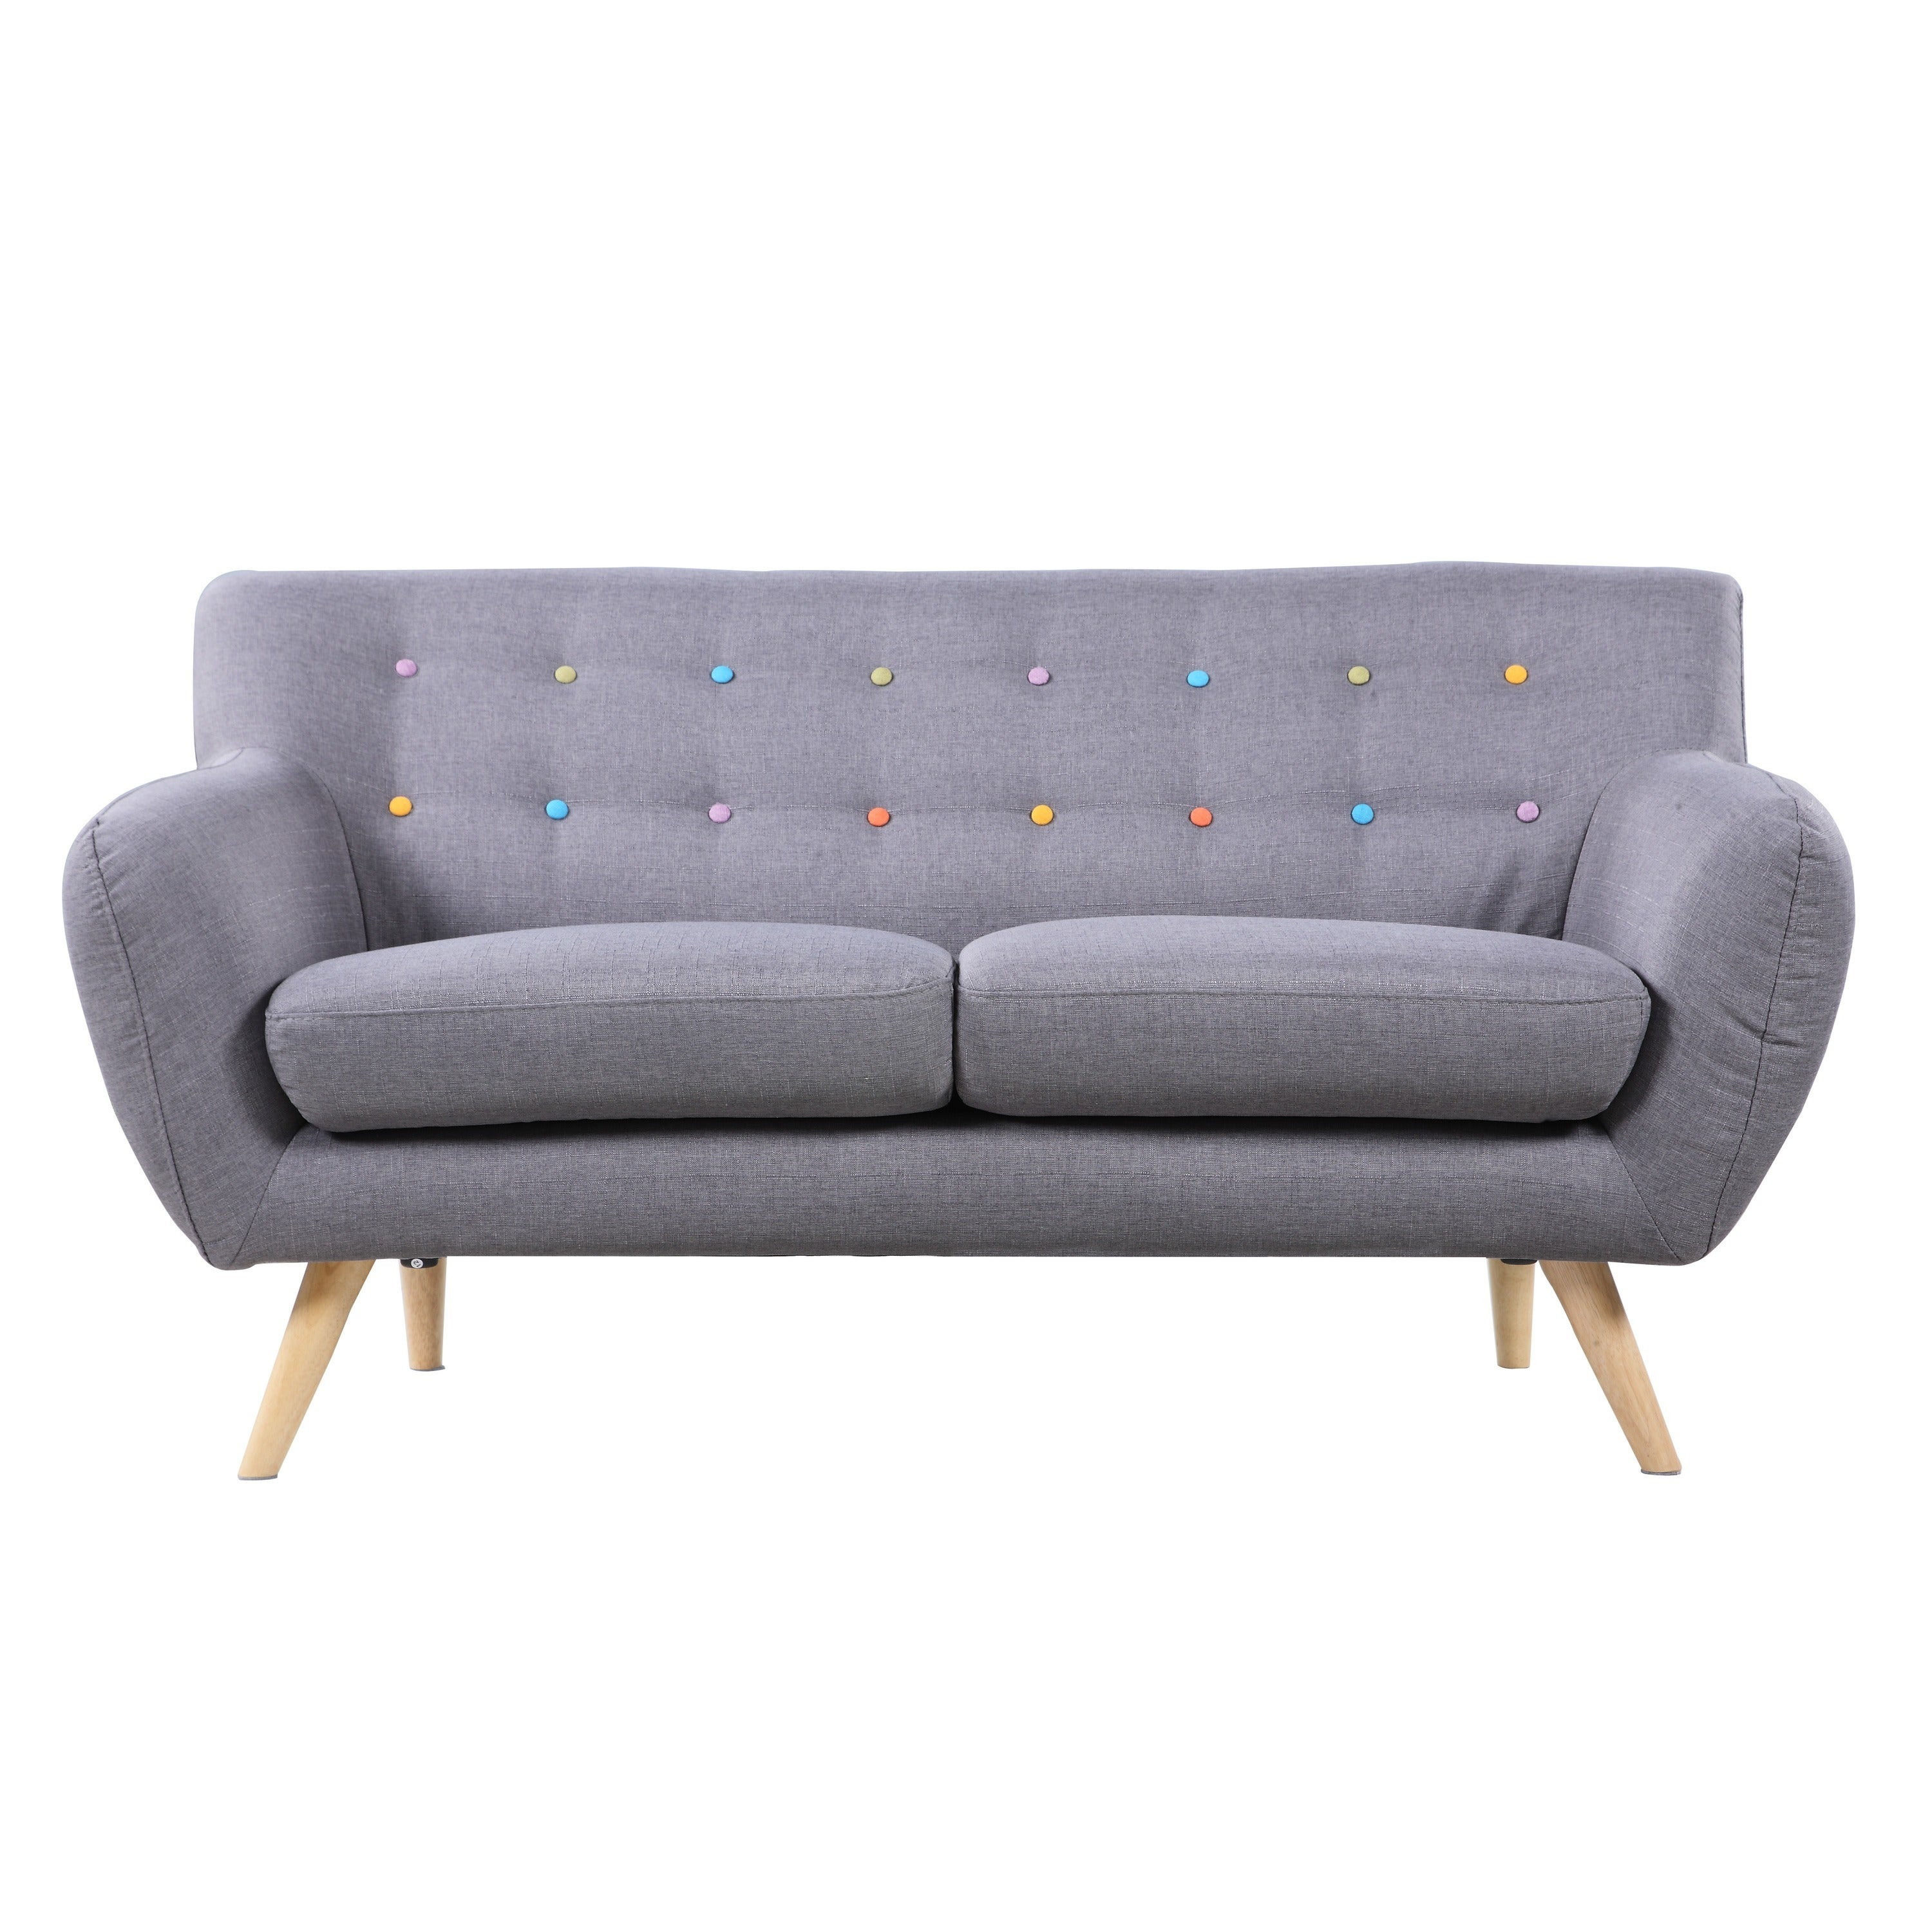 Mid Century Modern Love Seat Living Room Furniture Assorted  # Muebles Lady Lucky